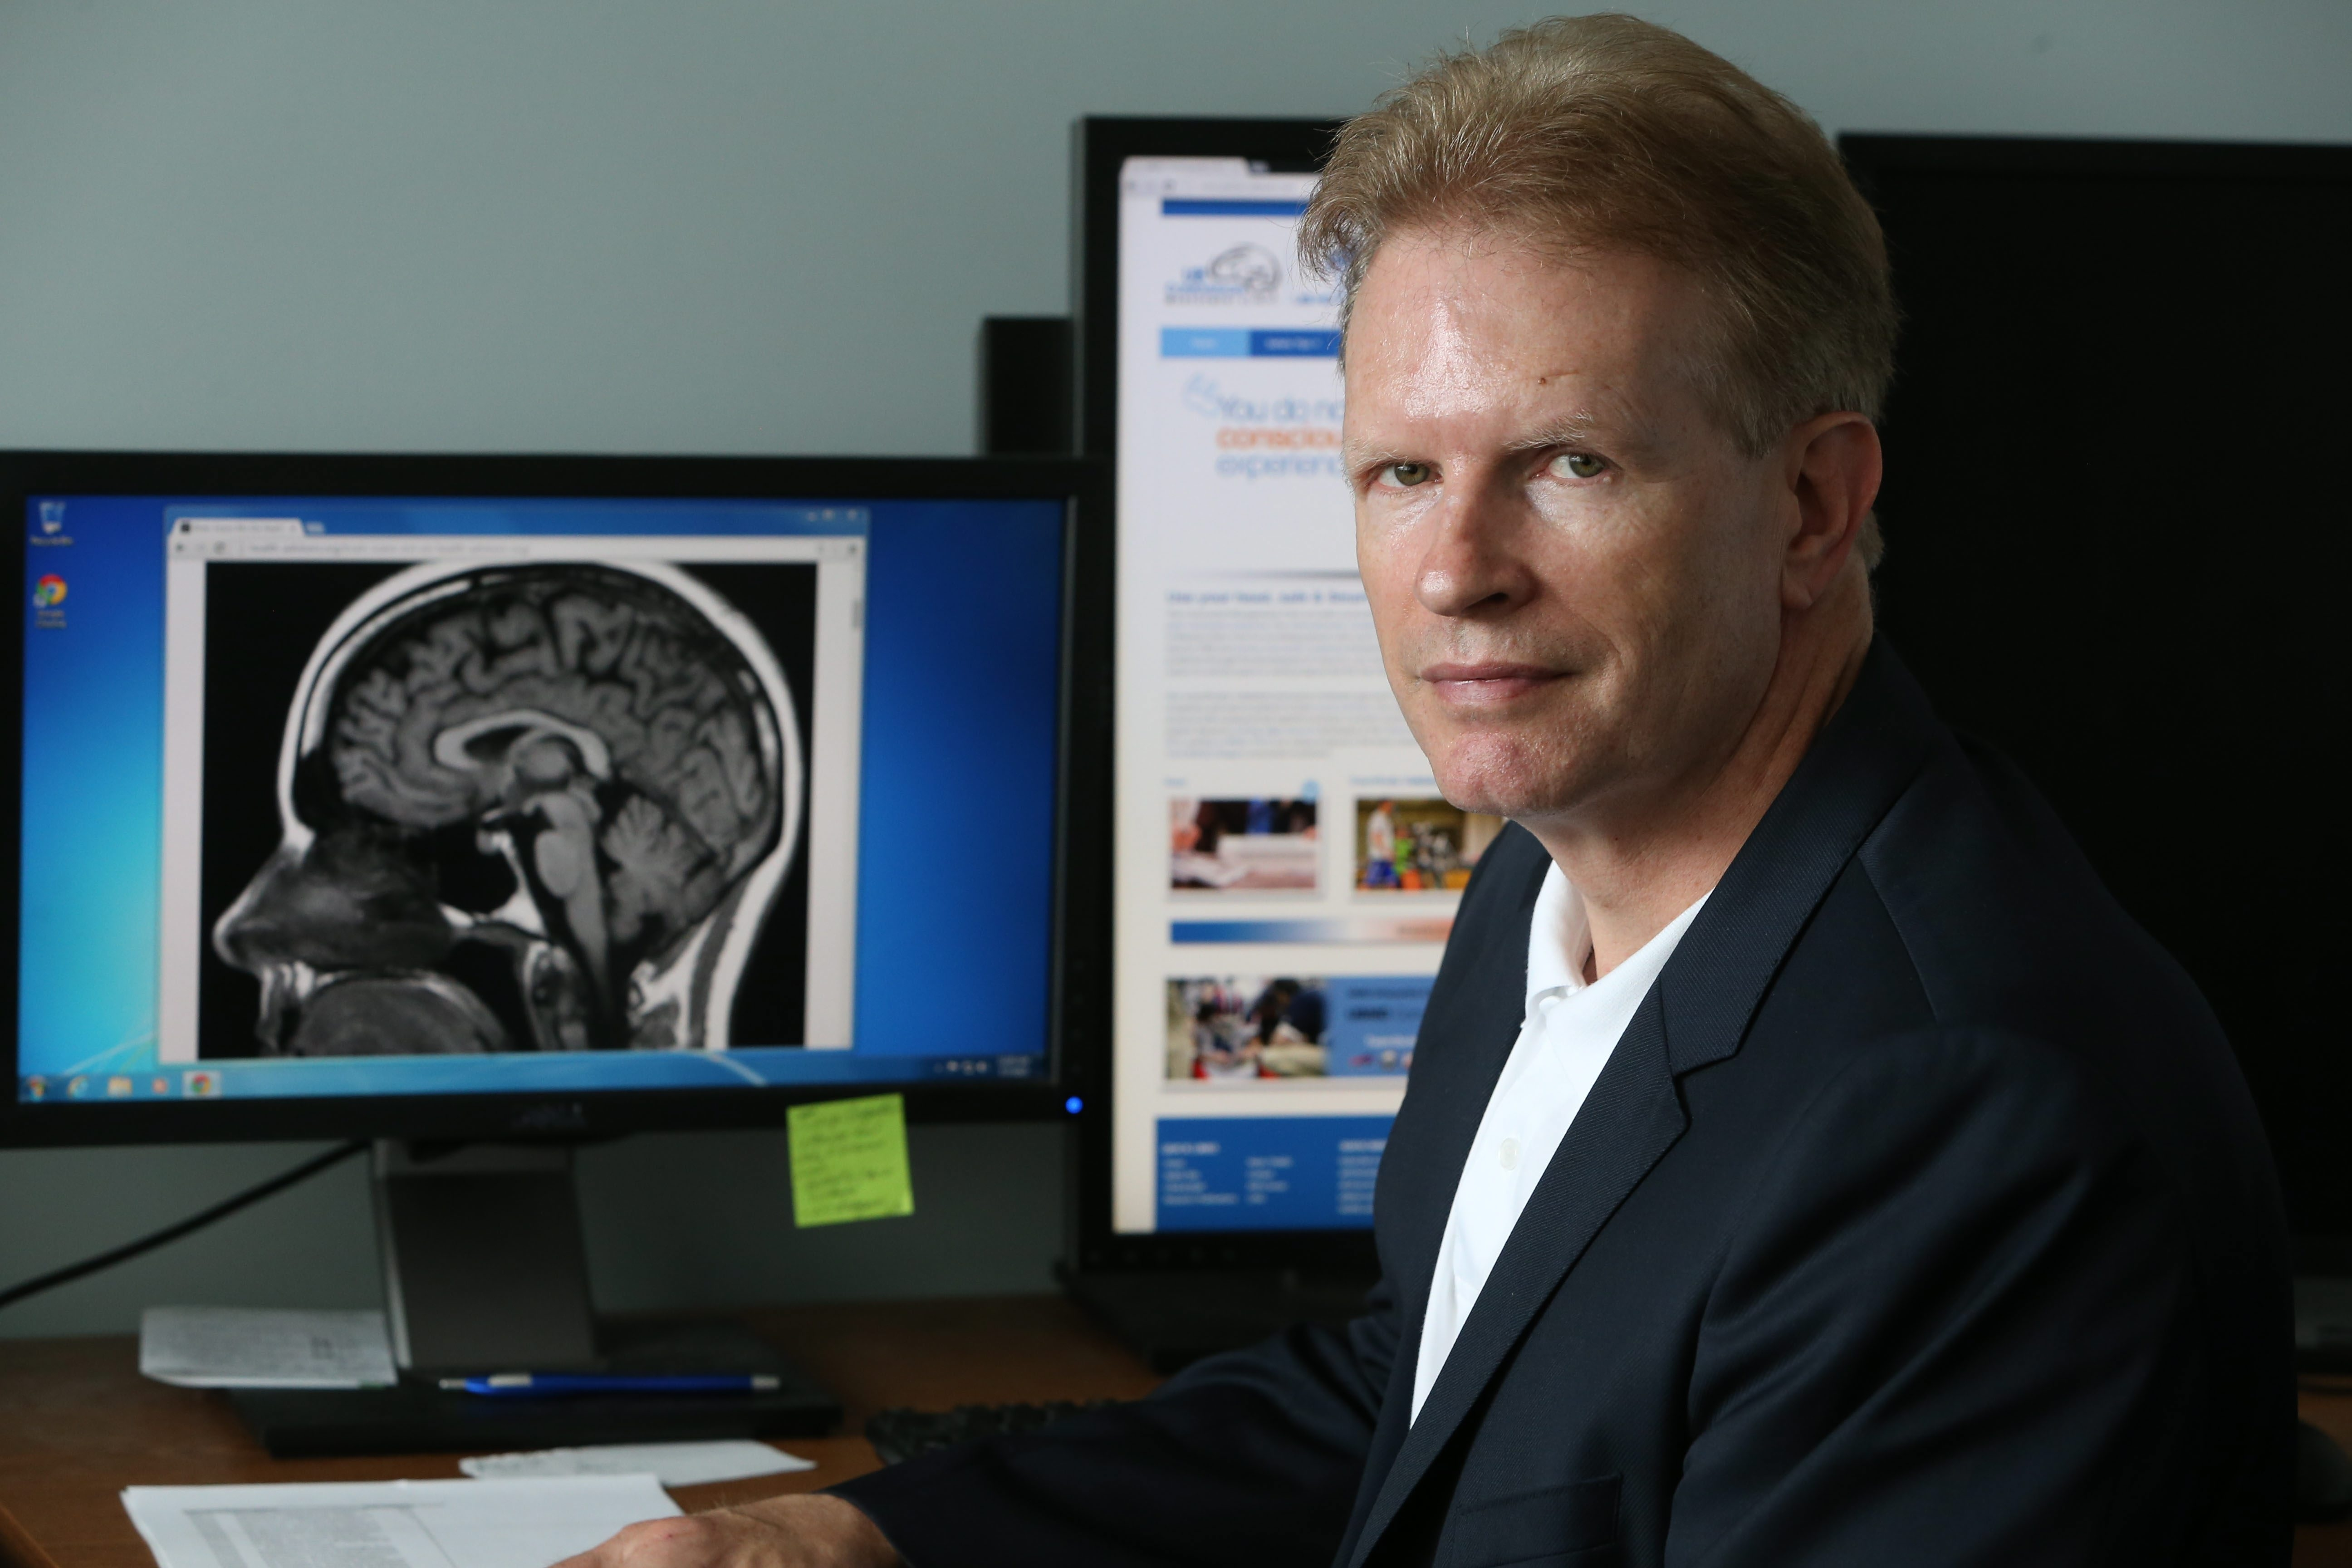 Dr. John Leddy Is a physician with UBMD Orthopaedics and Sports Medecine and Director of UB Concussion Management clinic. Tuesday, July 7, 2015.  (Sharon Cantillon/Buffalo News)